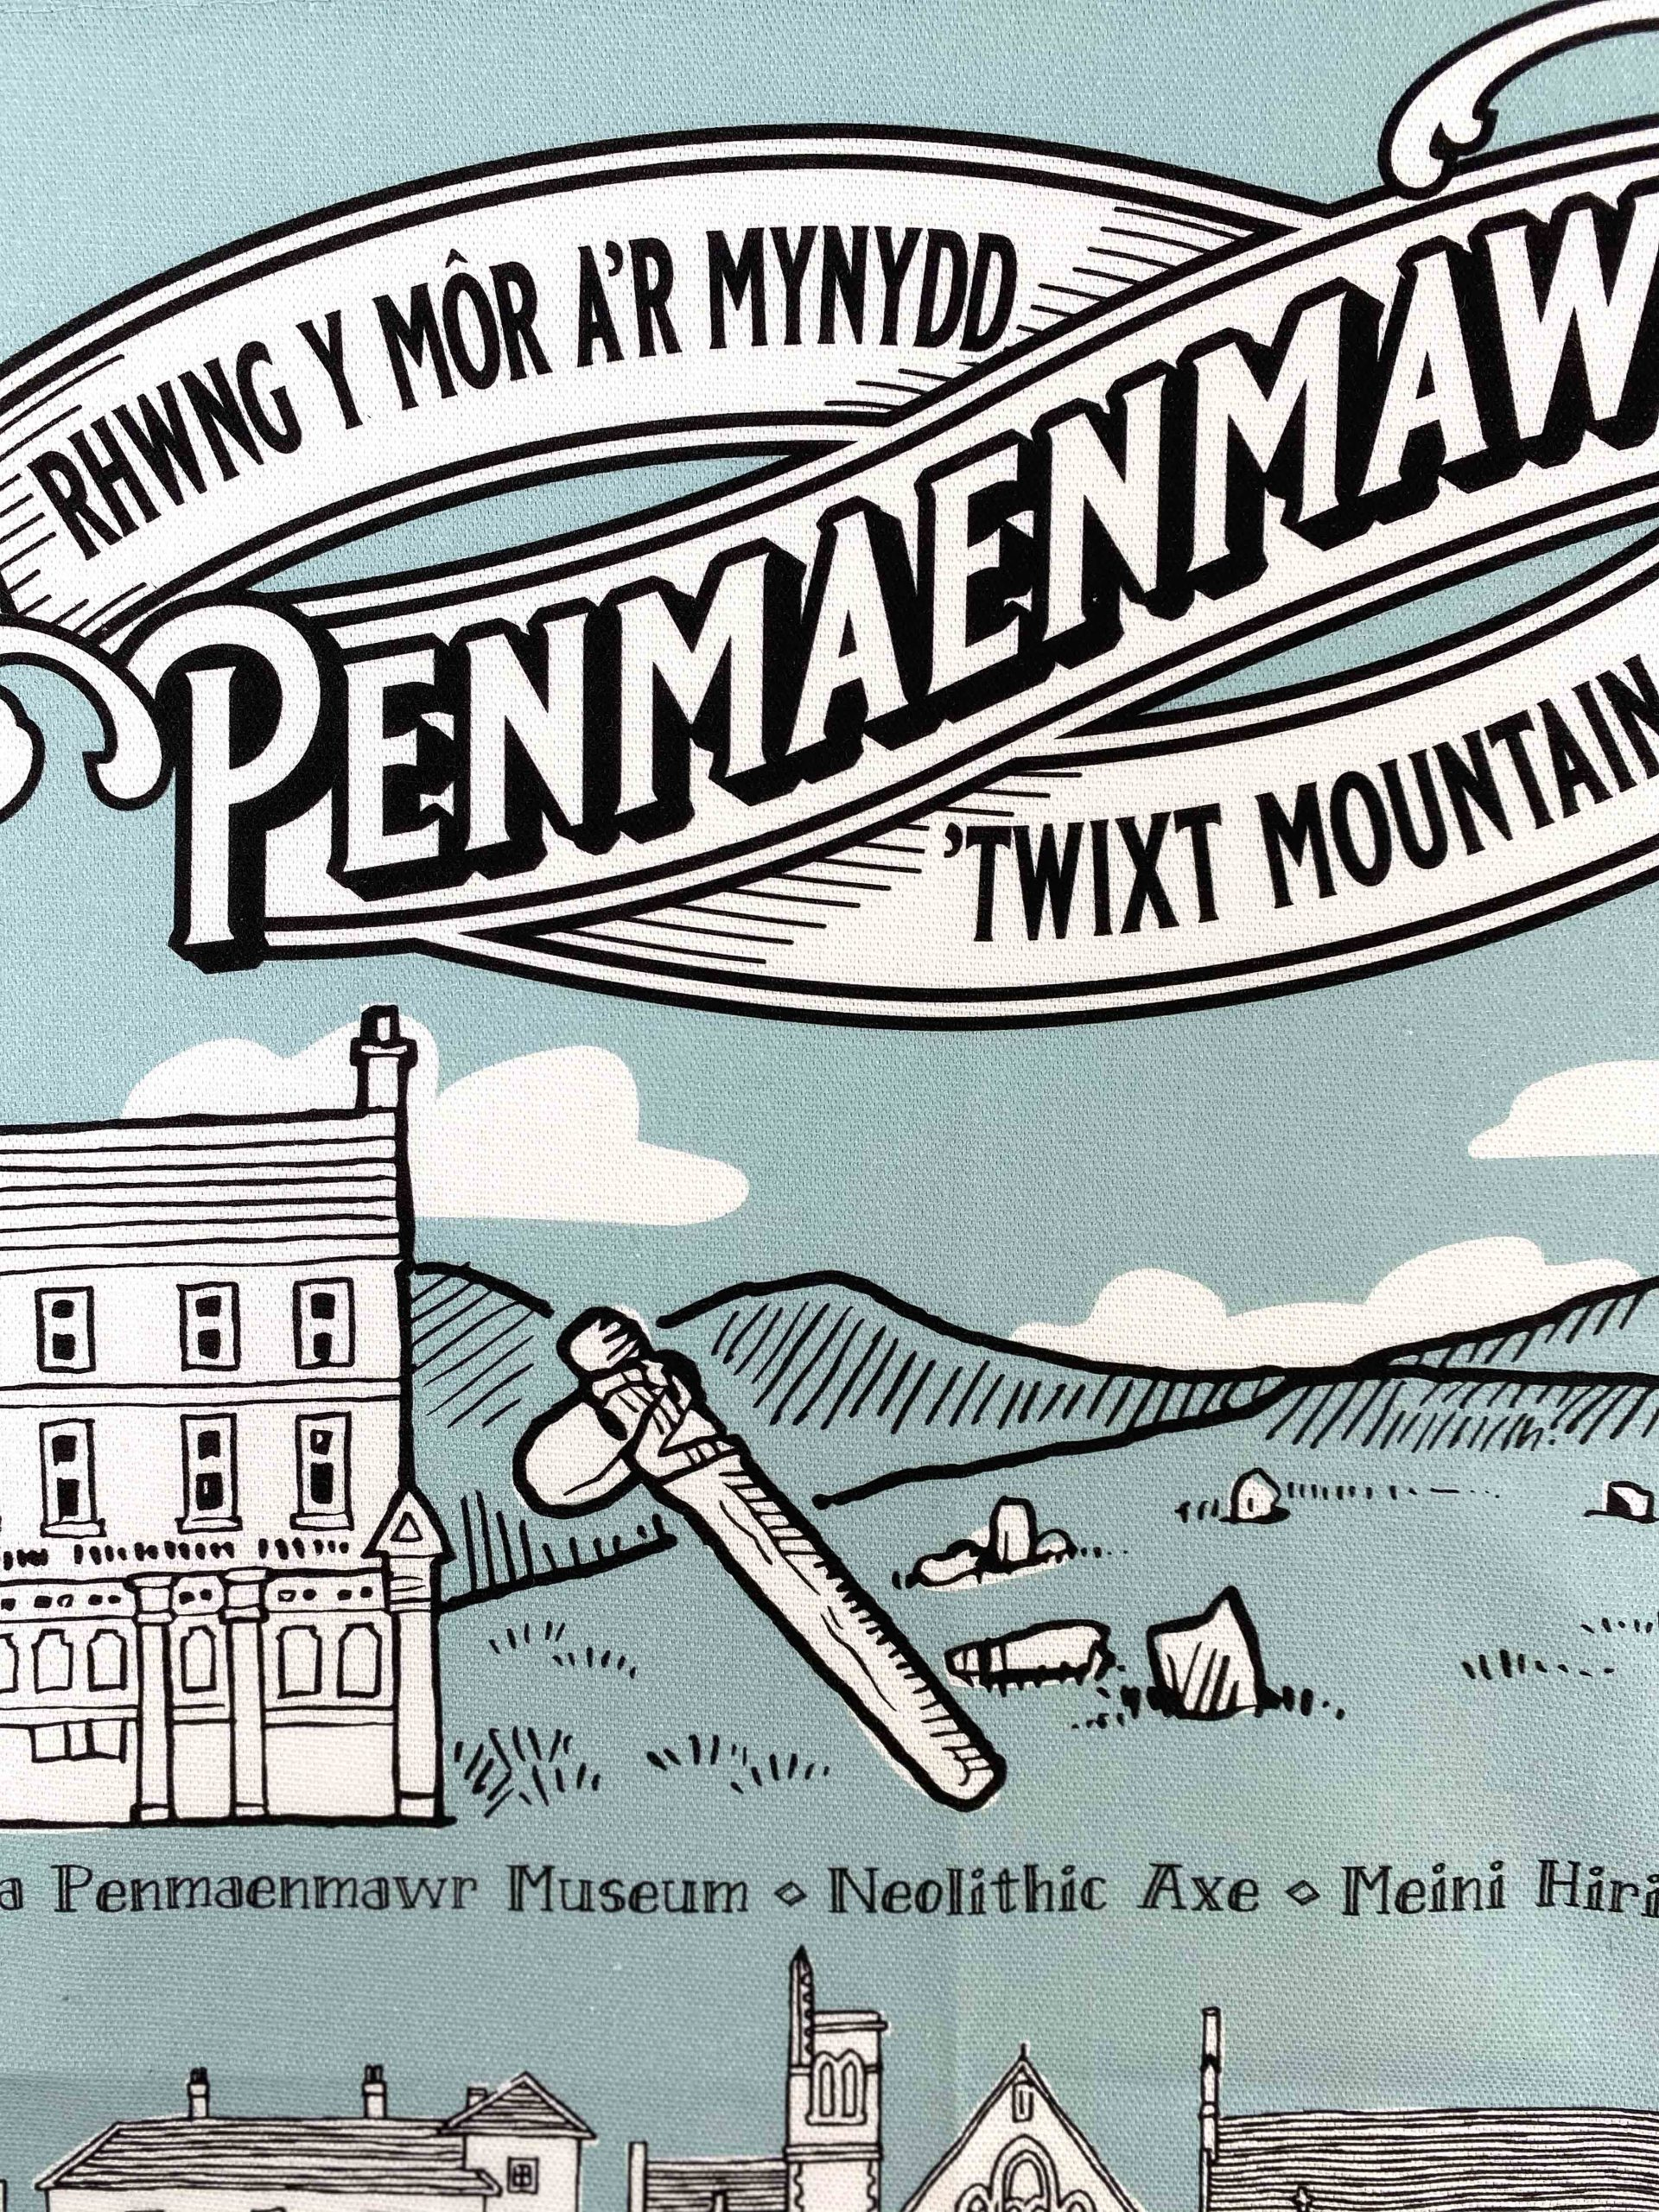 Printed tea towles by Paul Bristow's made in Wales for the Penmaenmawr musuem